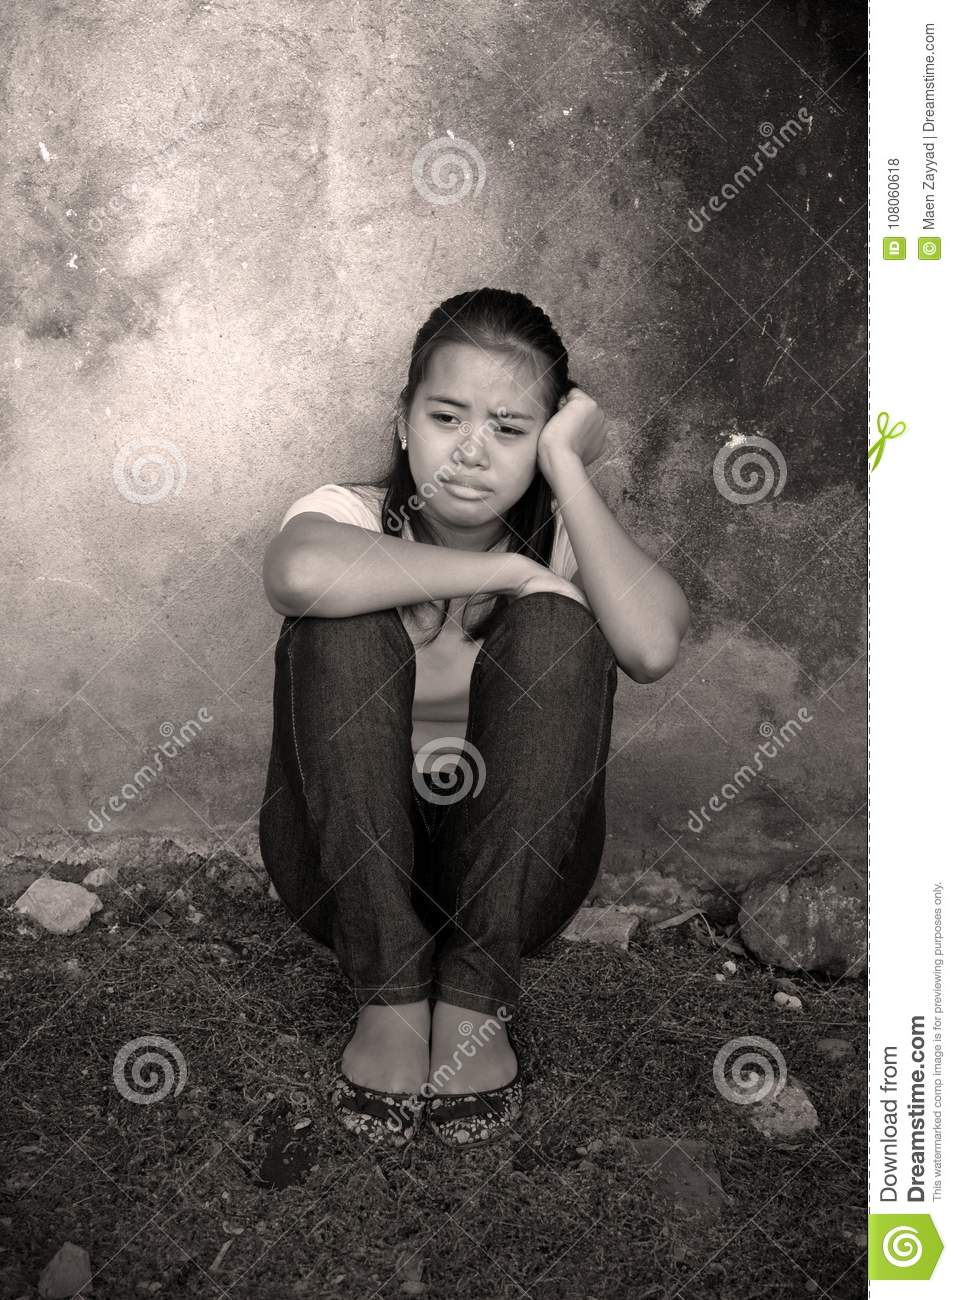 Stressed Crying teenager outdoor